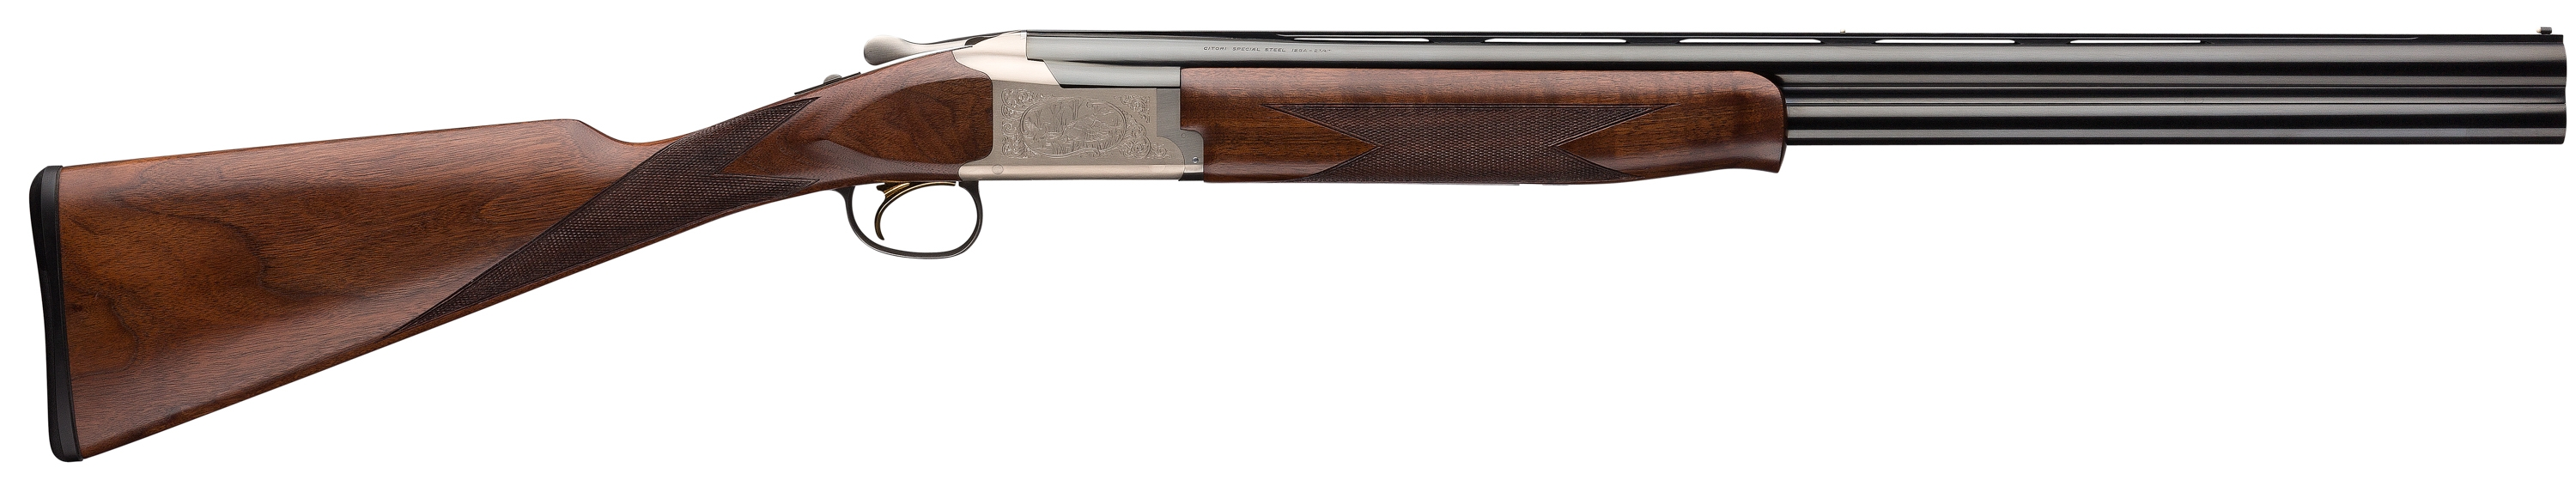 Browning Citori 725 Feather Superlight 12 Gauge